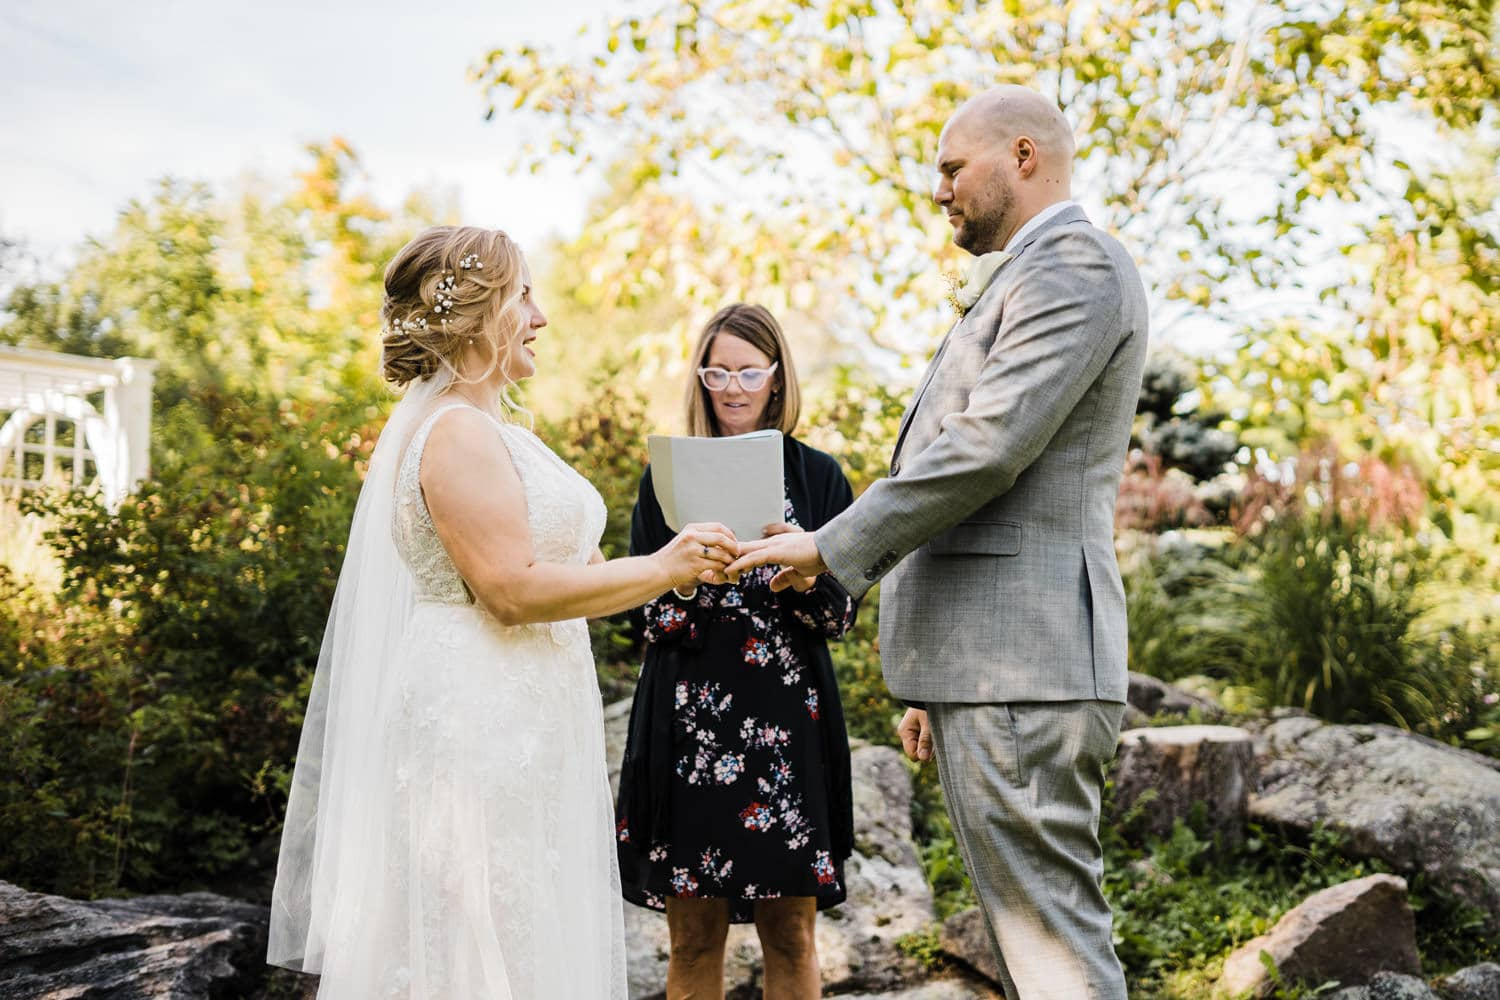 couple exchanges ring during wedding ceremony - stewart park perth